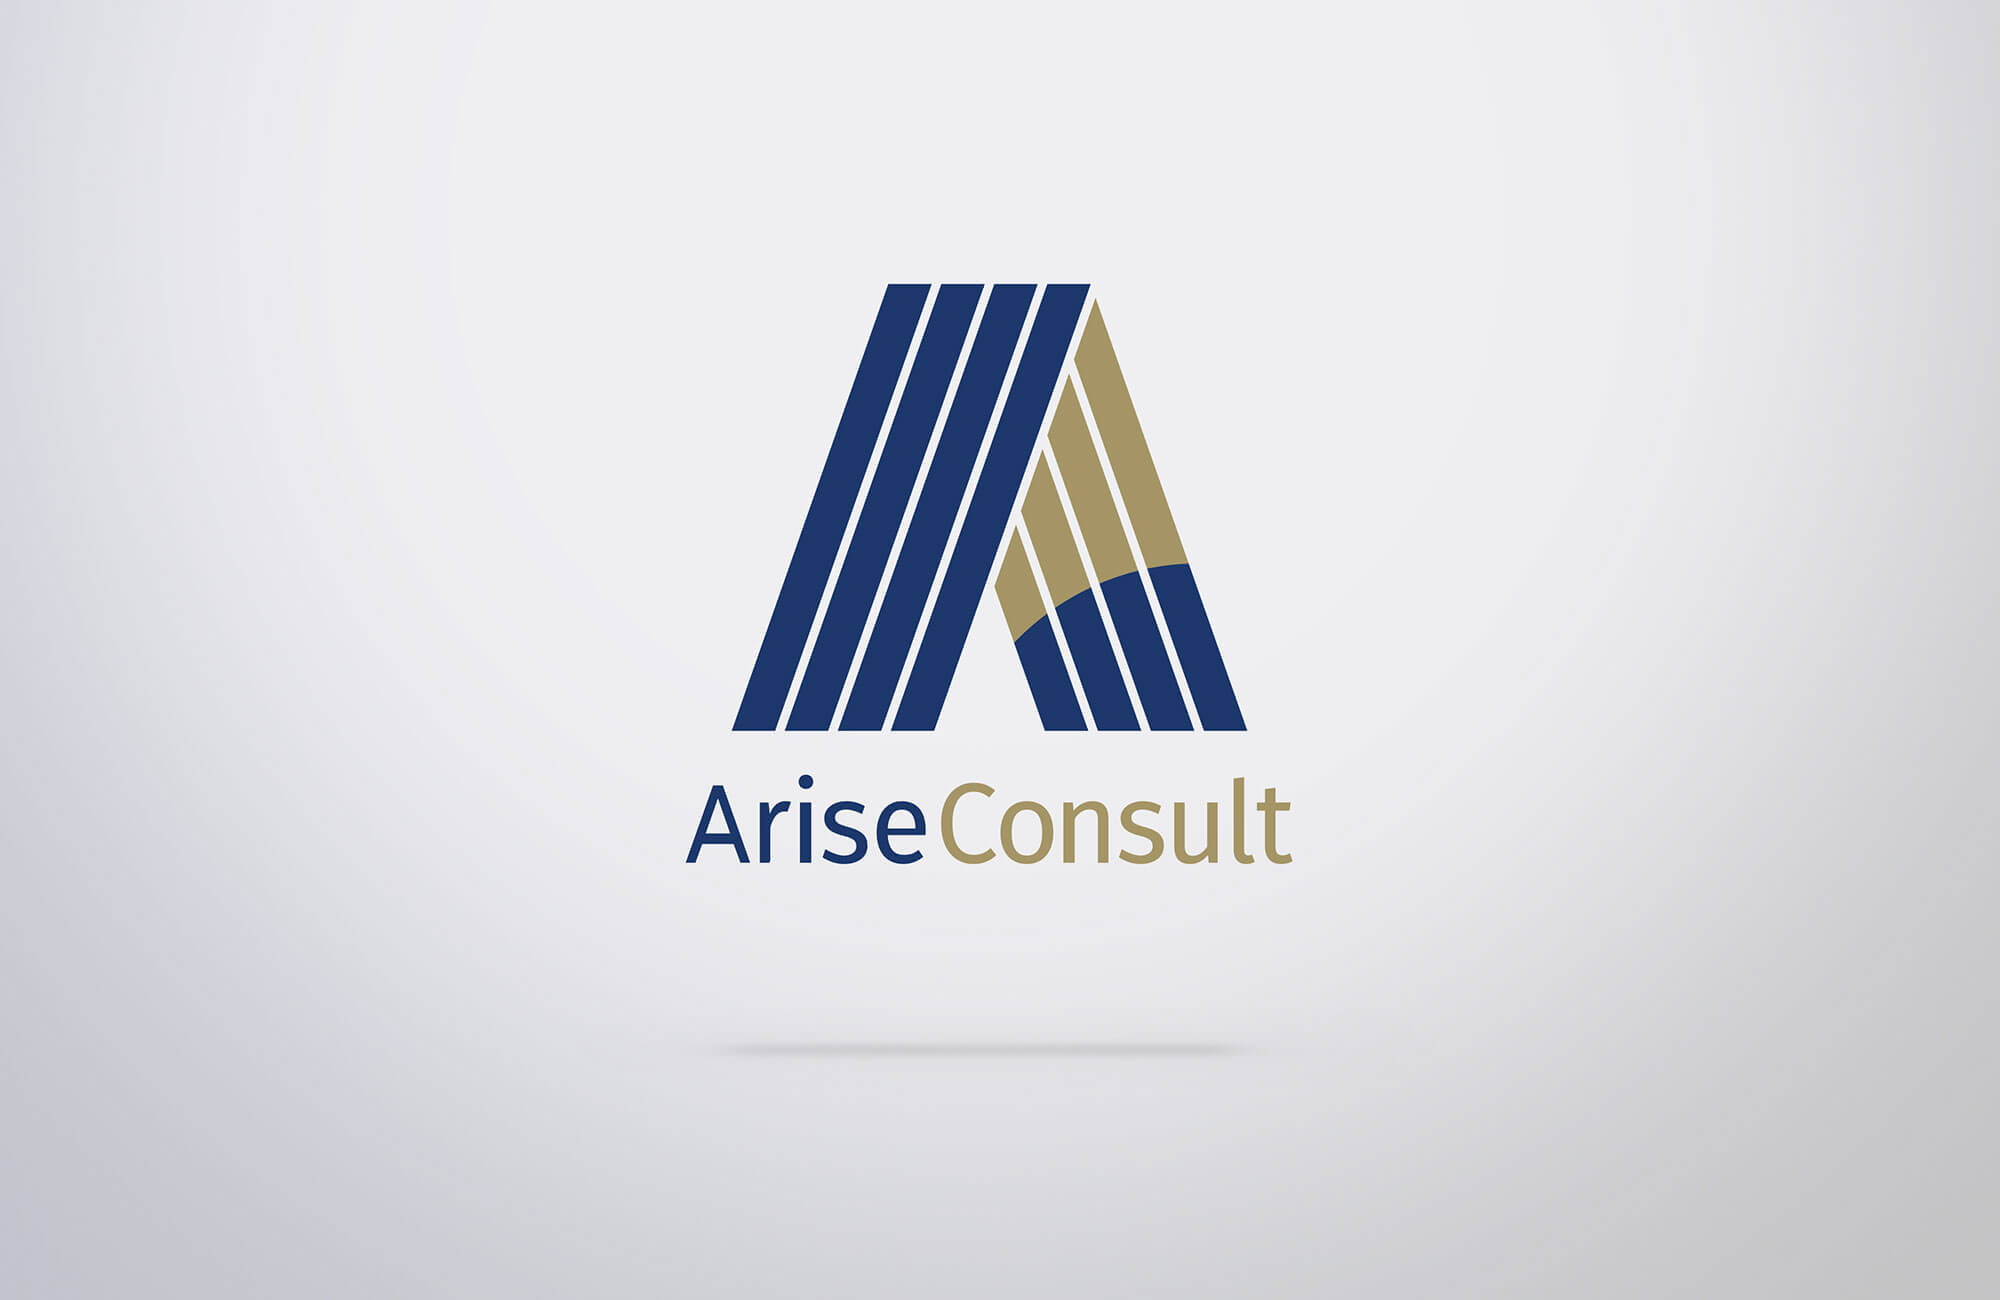 Arise Consult Logo Design